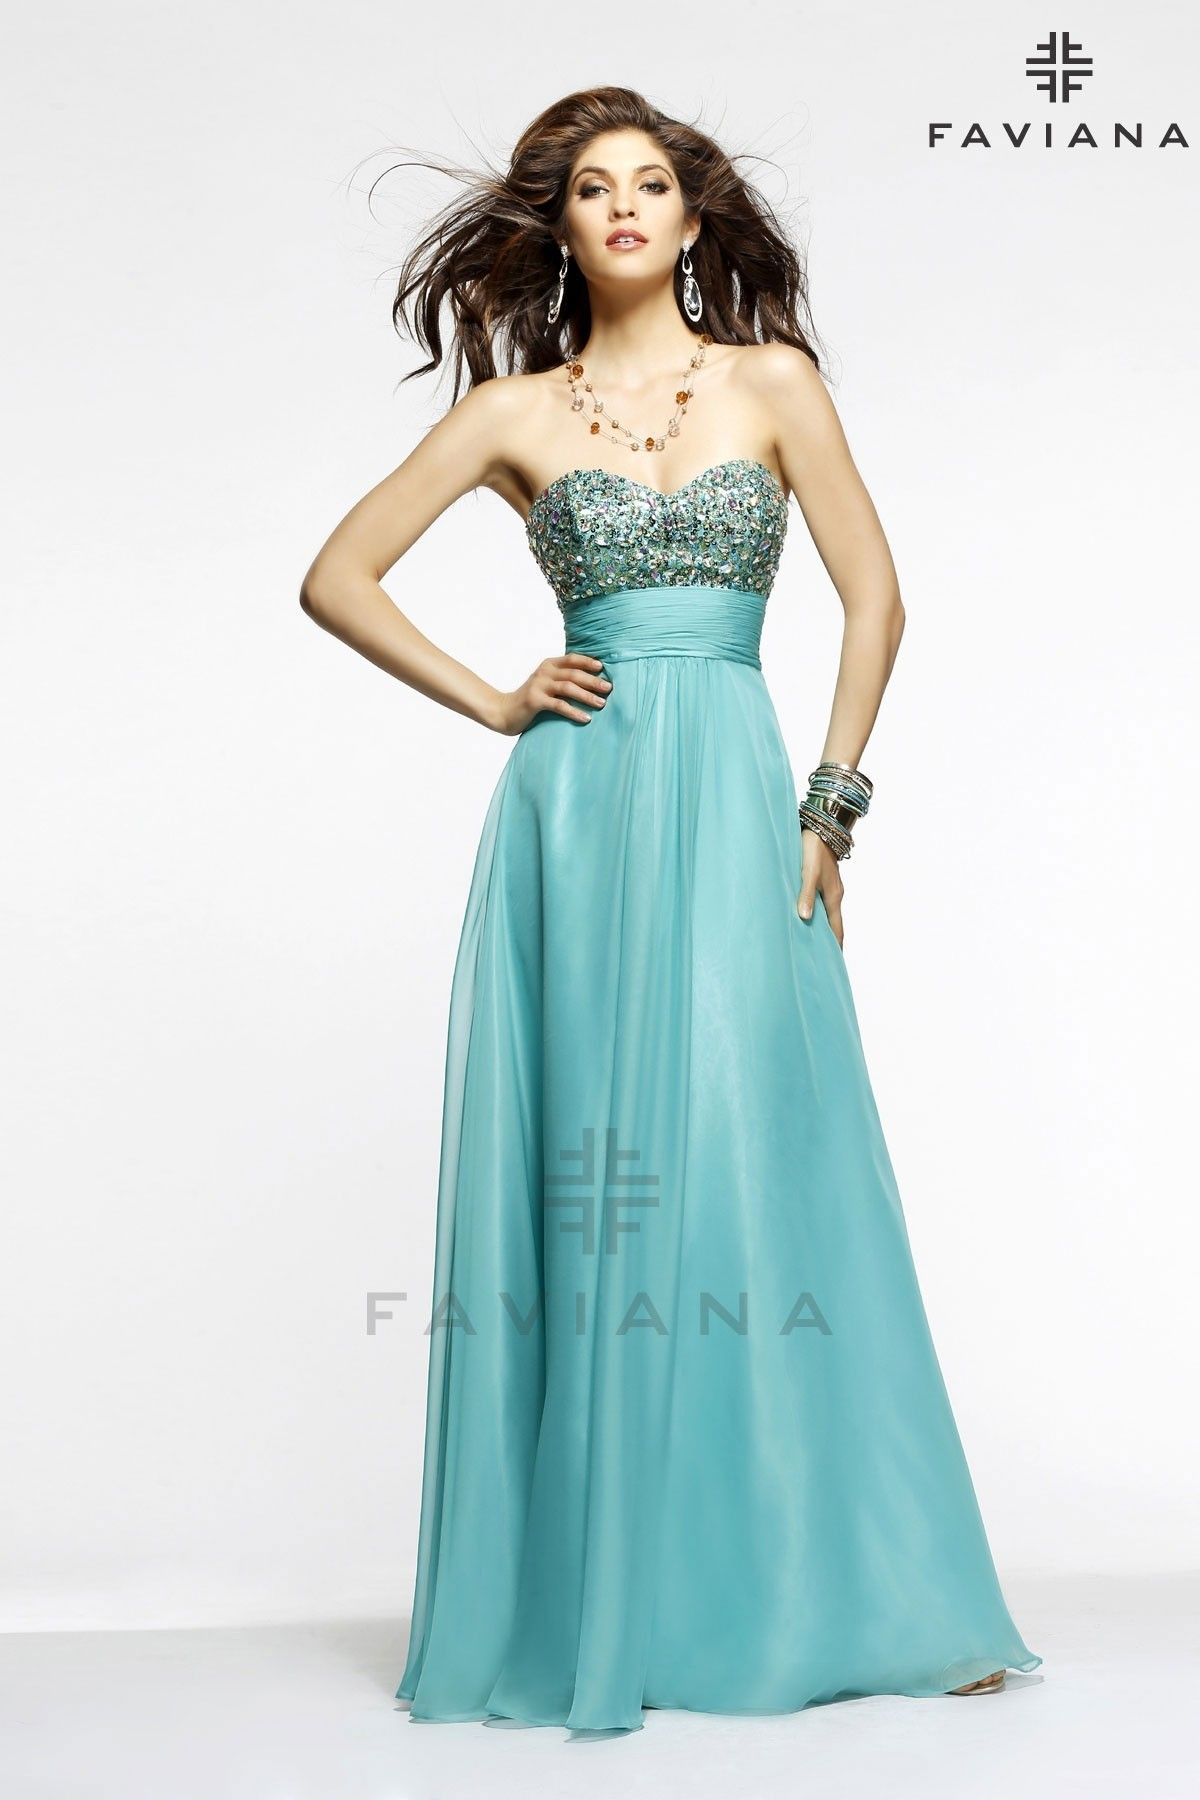 Faviana Chiffon skirt with strapless, beaded top, corset back sold ...